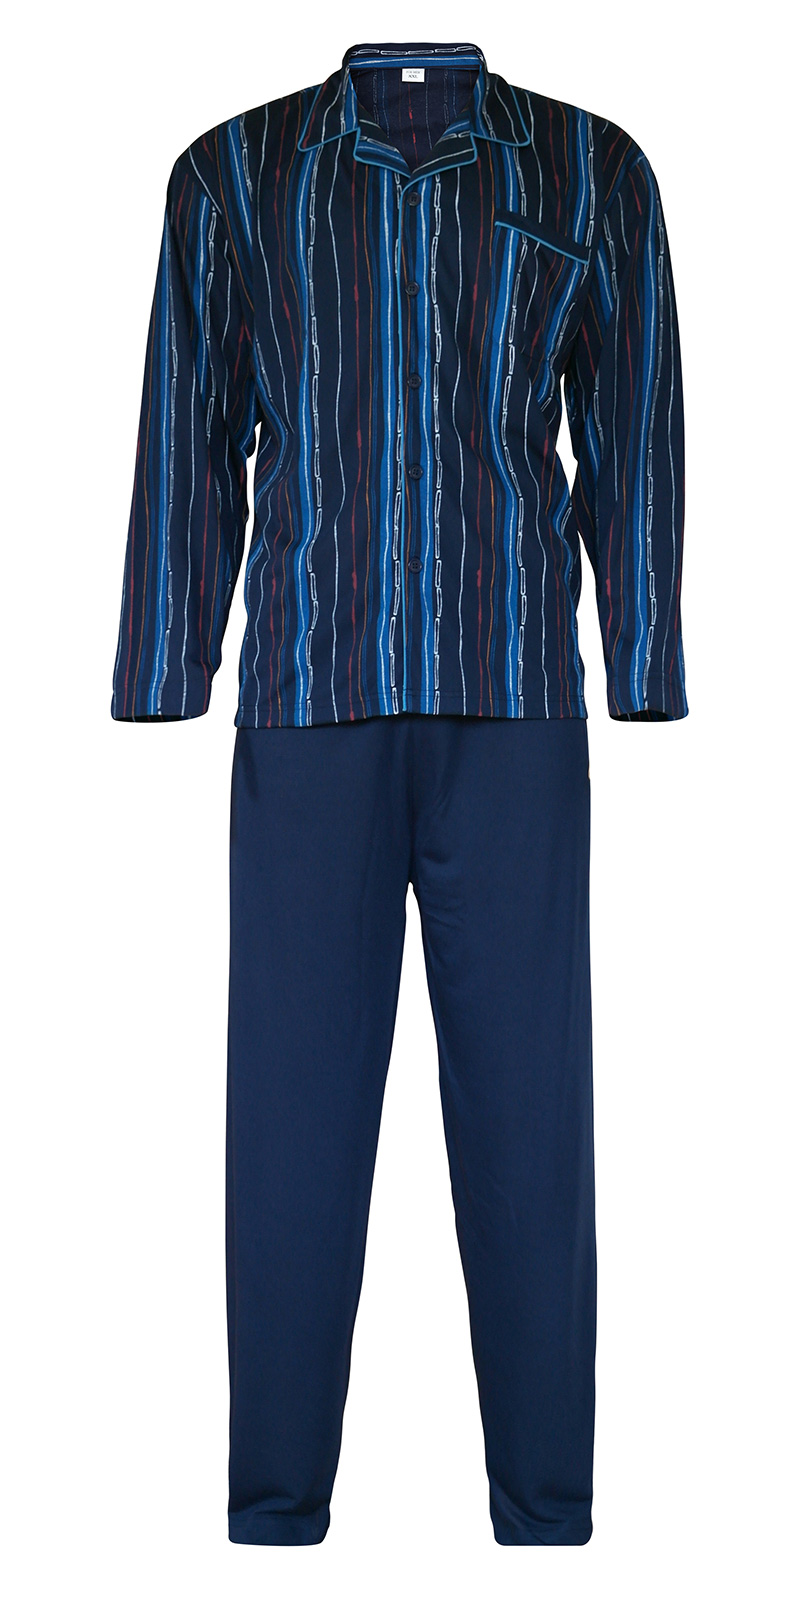 herren schlafanzug pyjama lang nachtw sche 100 baumwolle men 39 s pajamas at mian. Black Bedroom Furniture Sets. Home Design Ideas